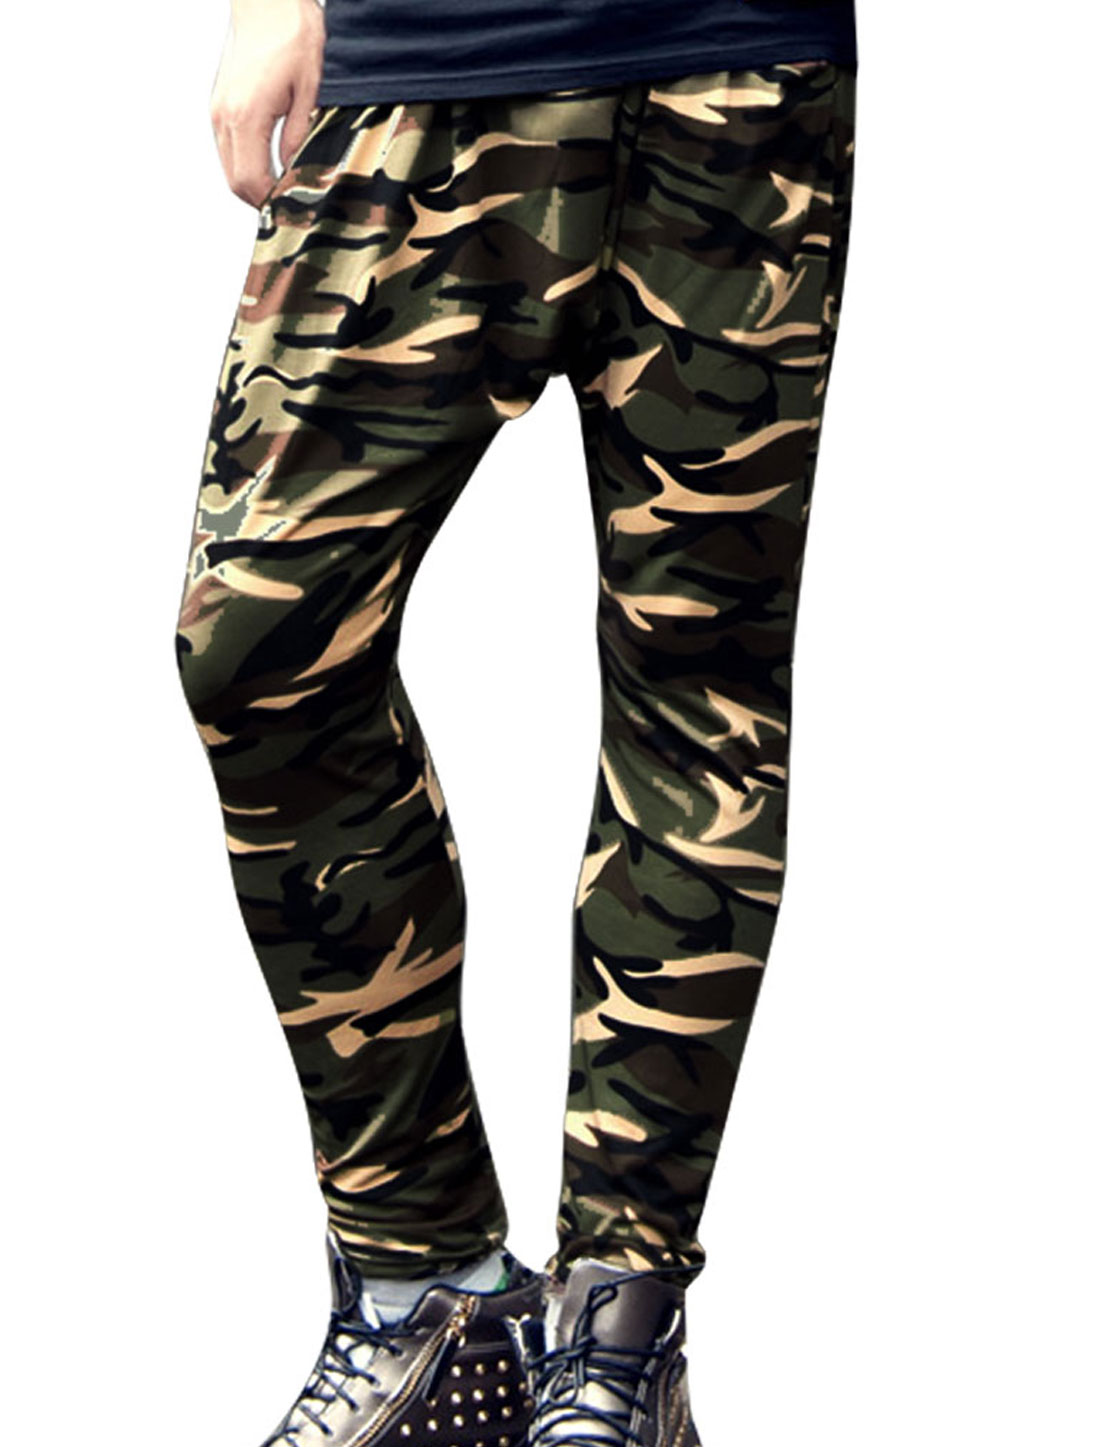 Men Elastic Drawstring Waist Camouflage Pattern Cropped Pants Army Green W28